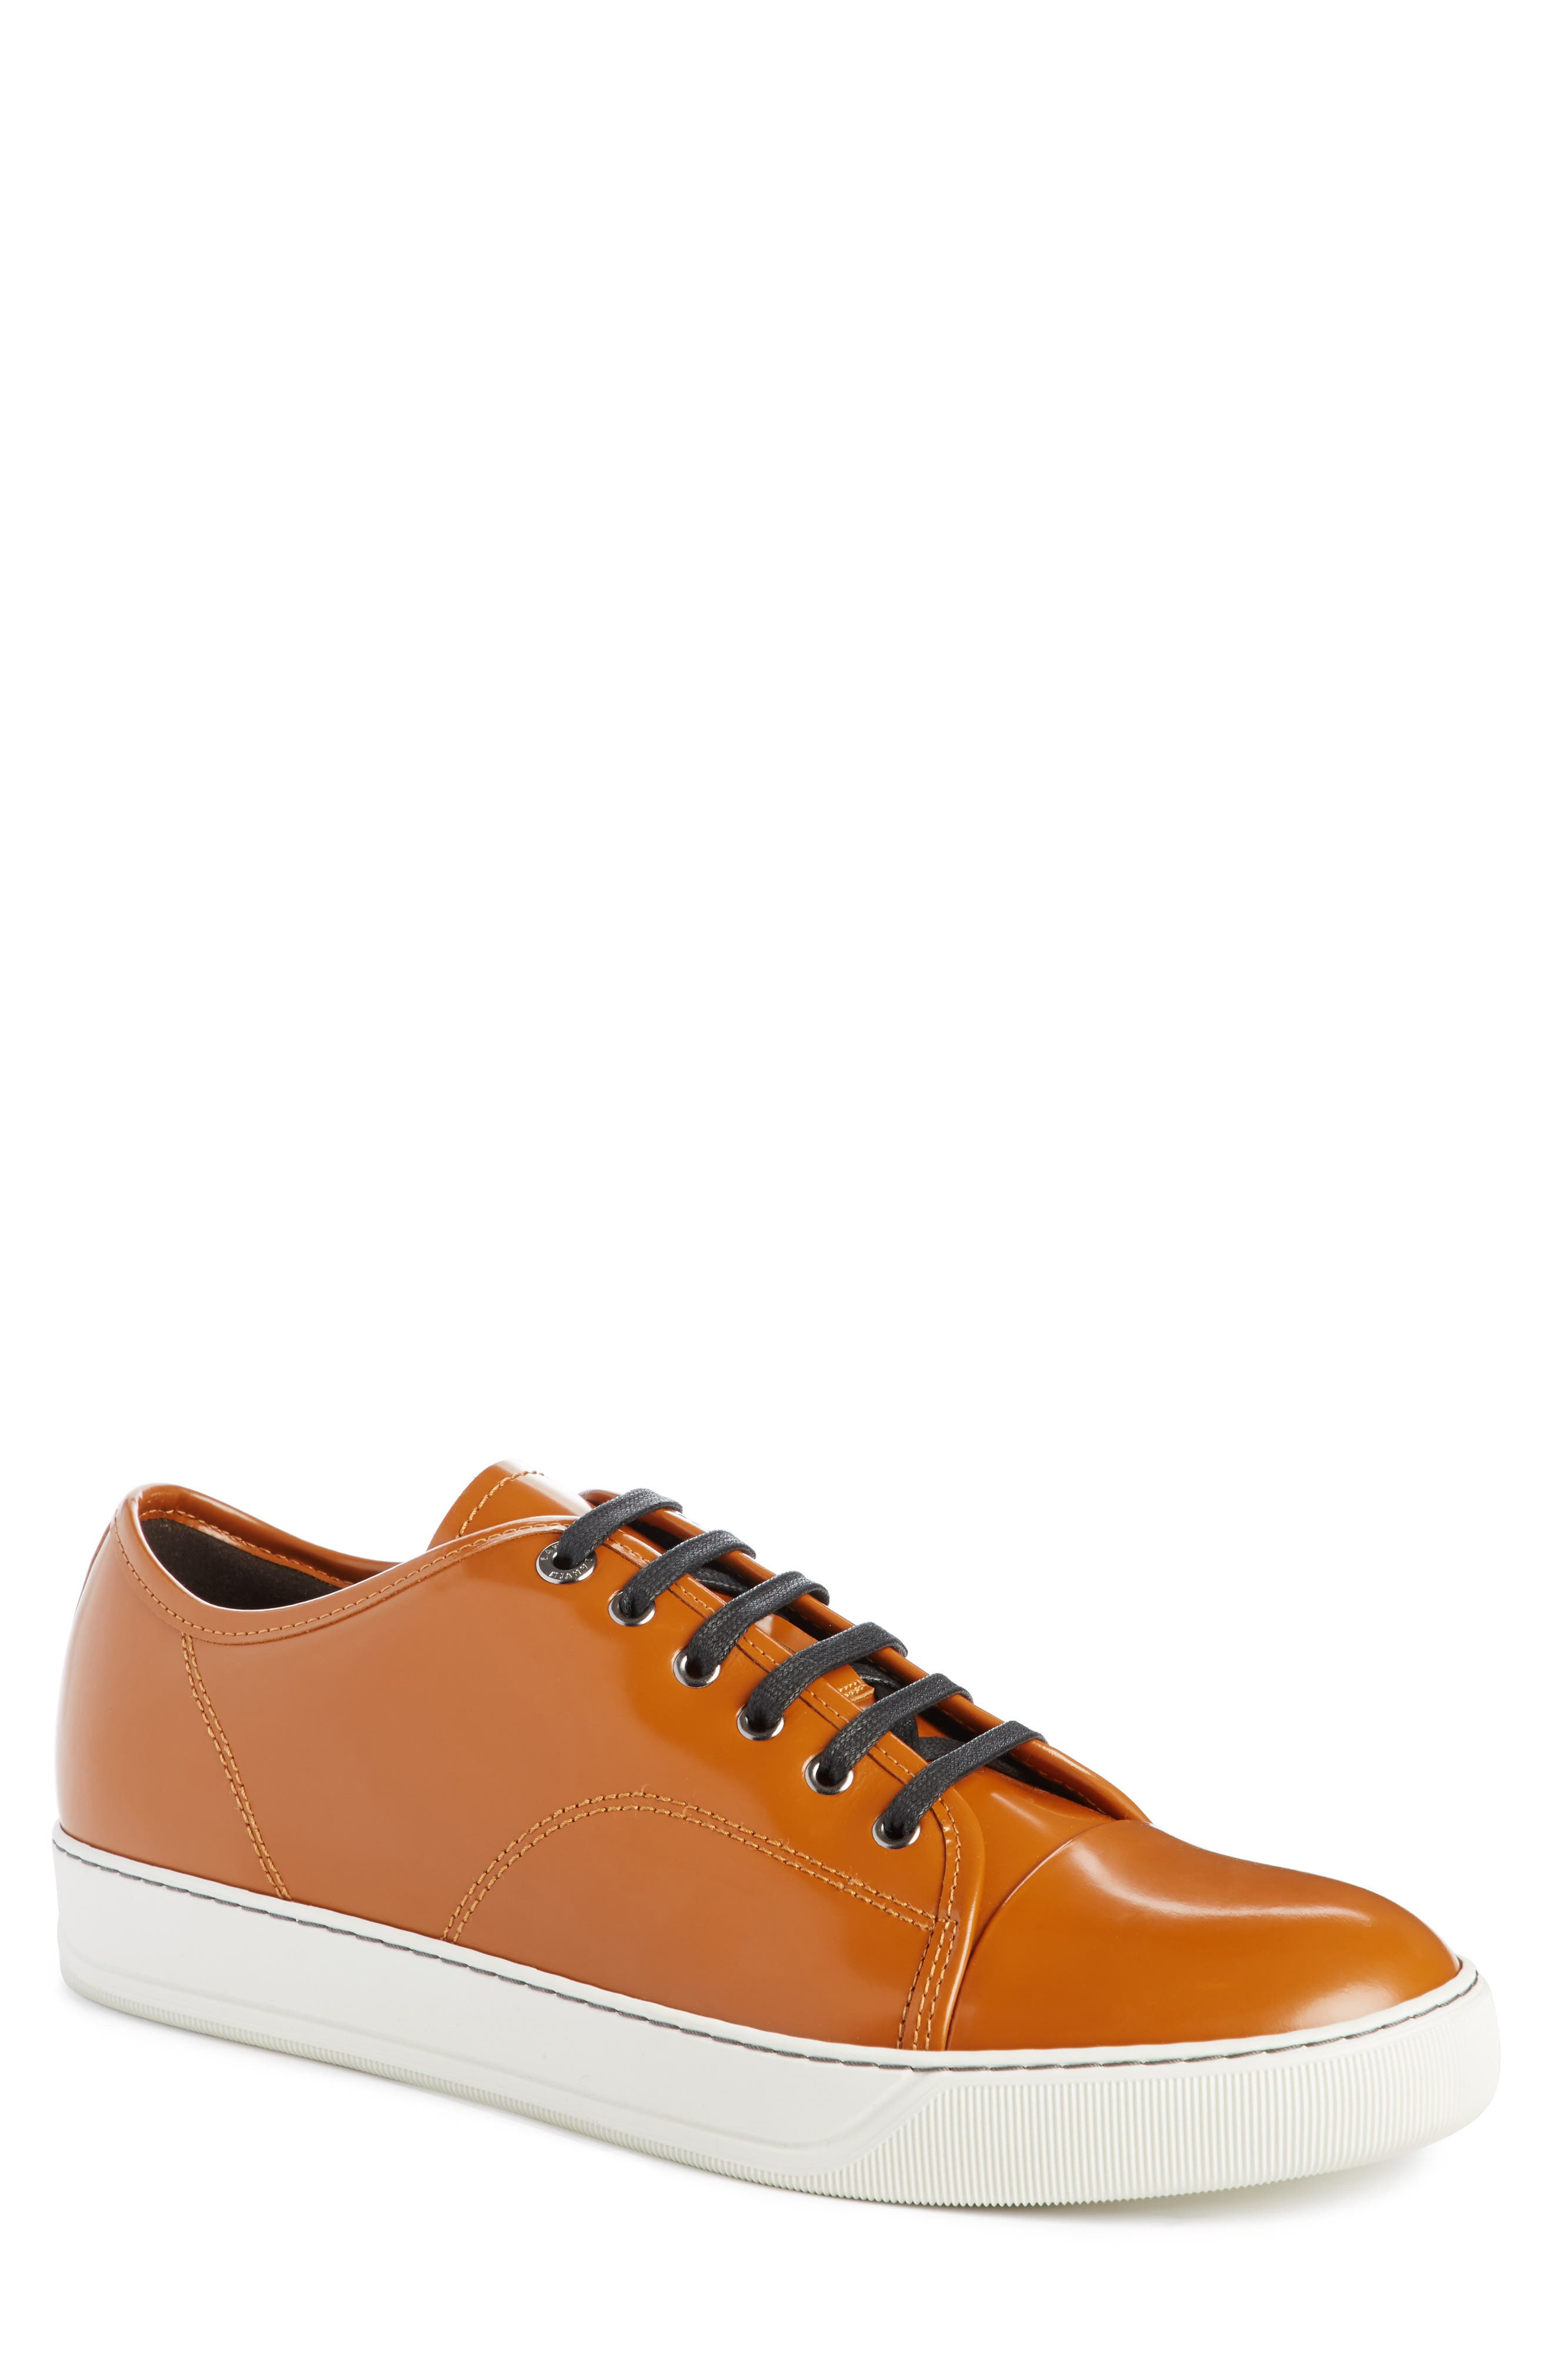 Lanvin Low Top Sneaker (Men)